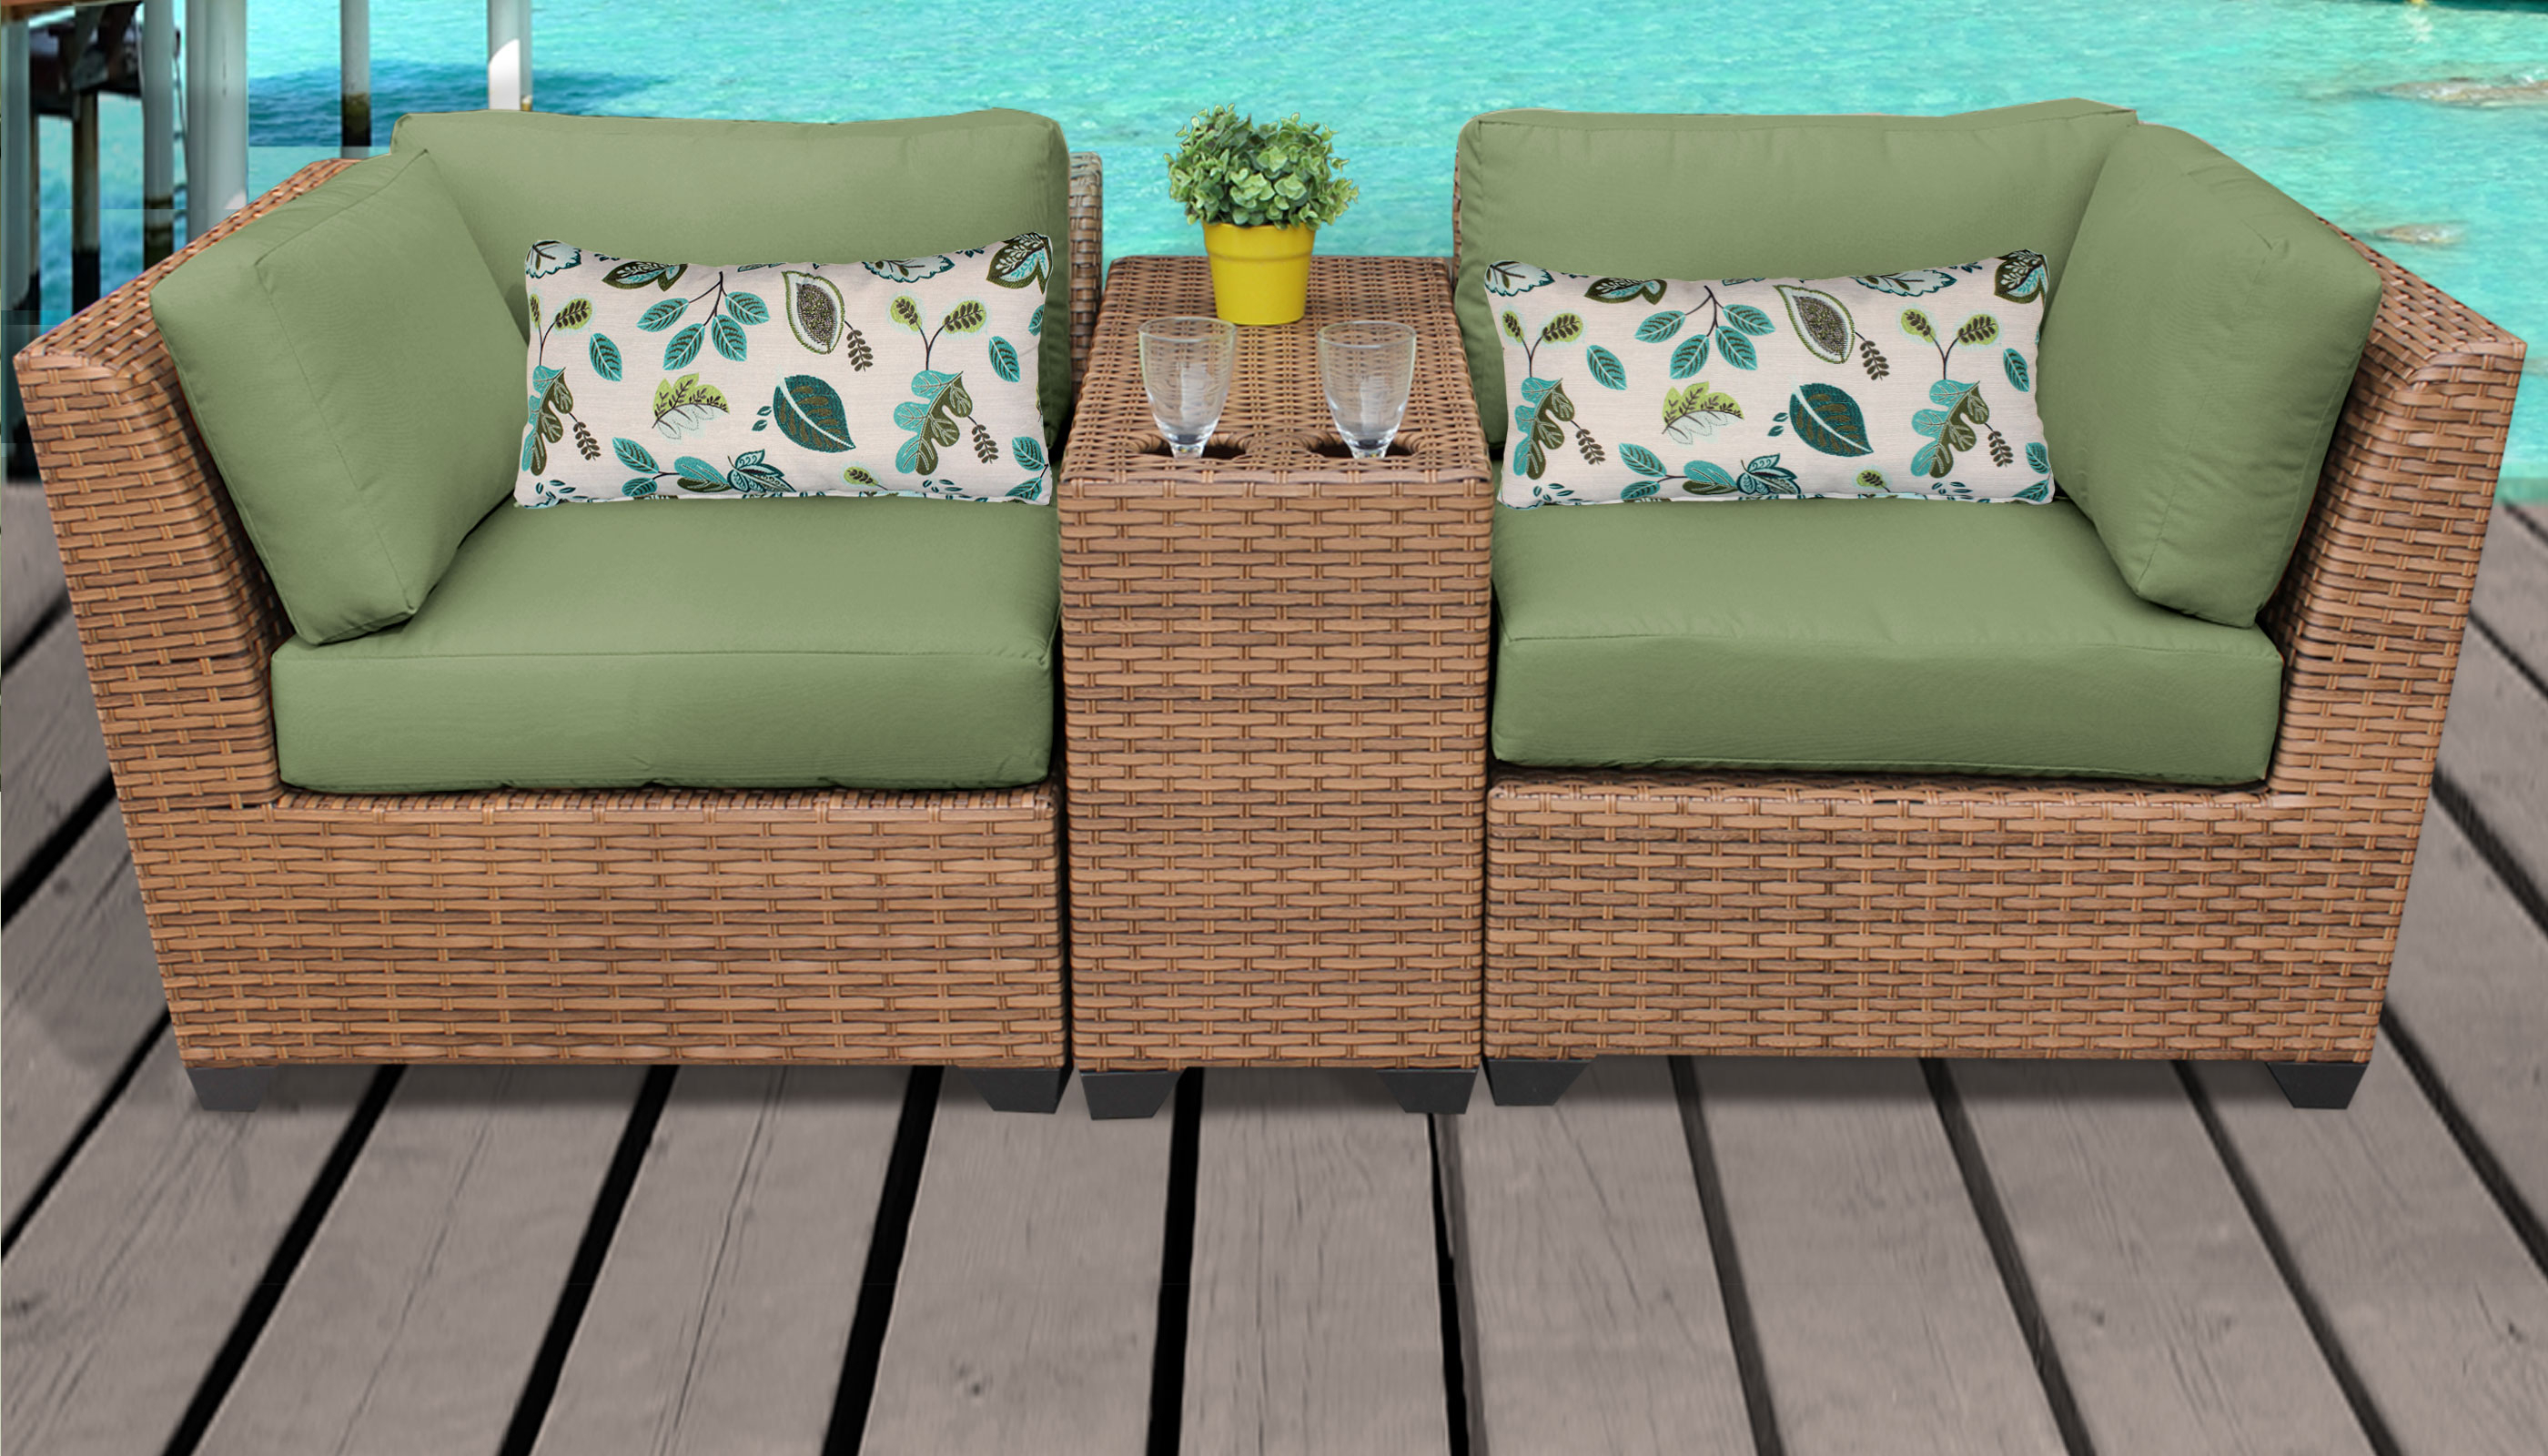 Laguna 3 Piece Outdoor Wicker Patio Furniture Set 03B Throughout Preferred Laguna Outdoor Sofas With Cushions (View 3 of 20)